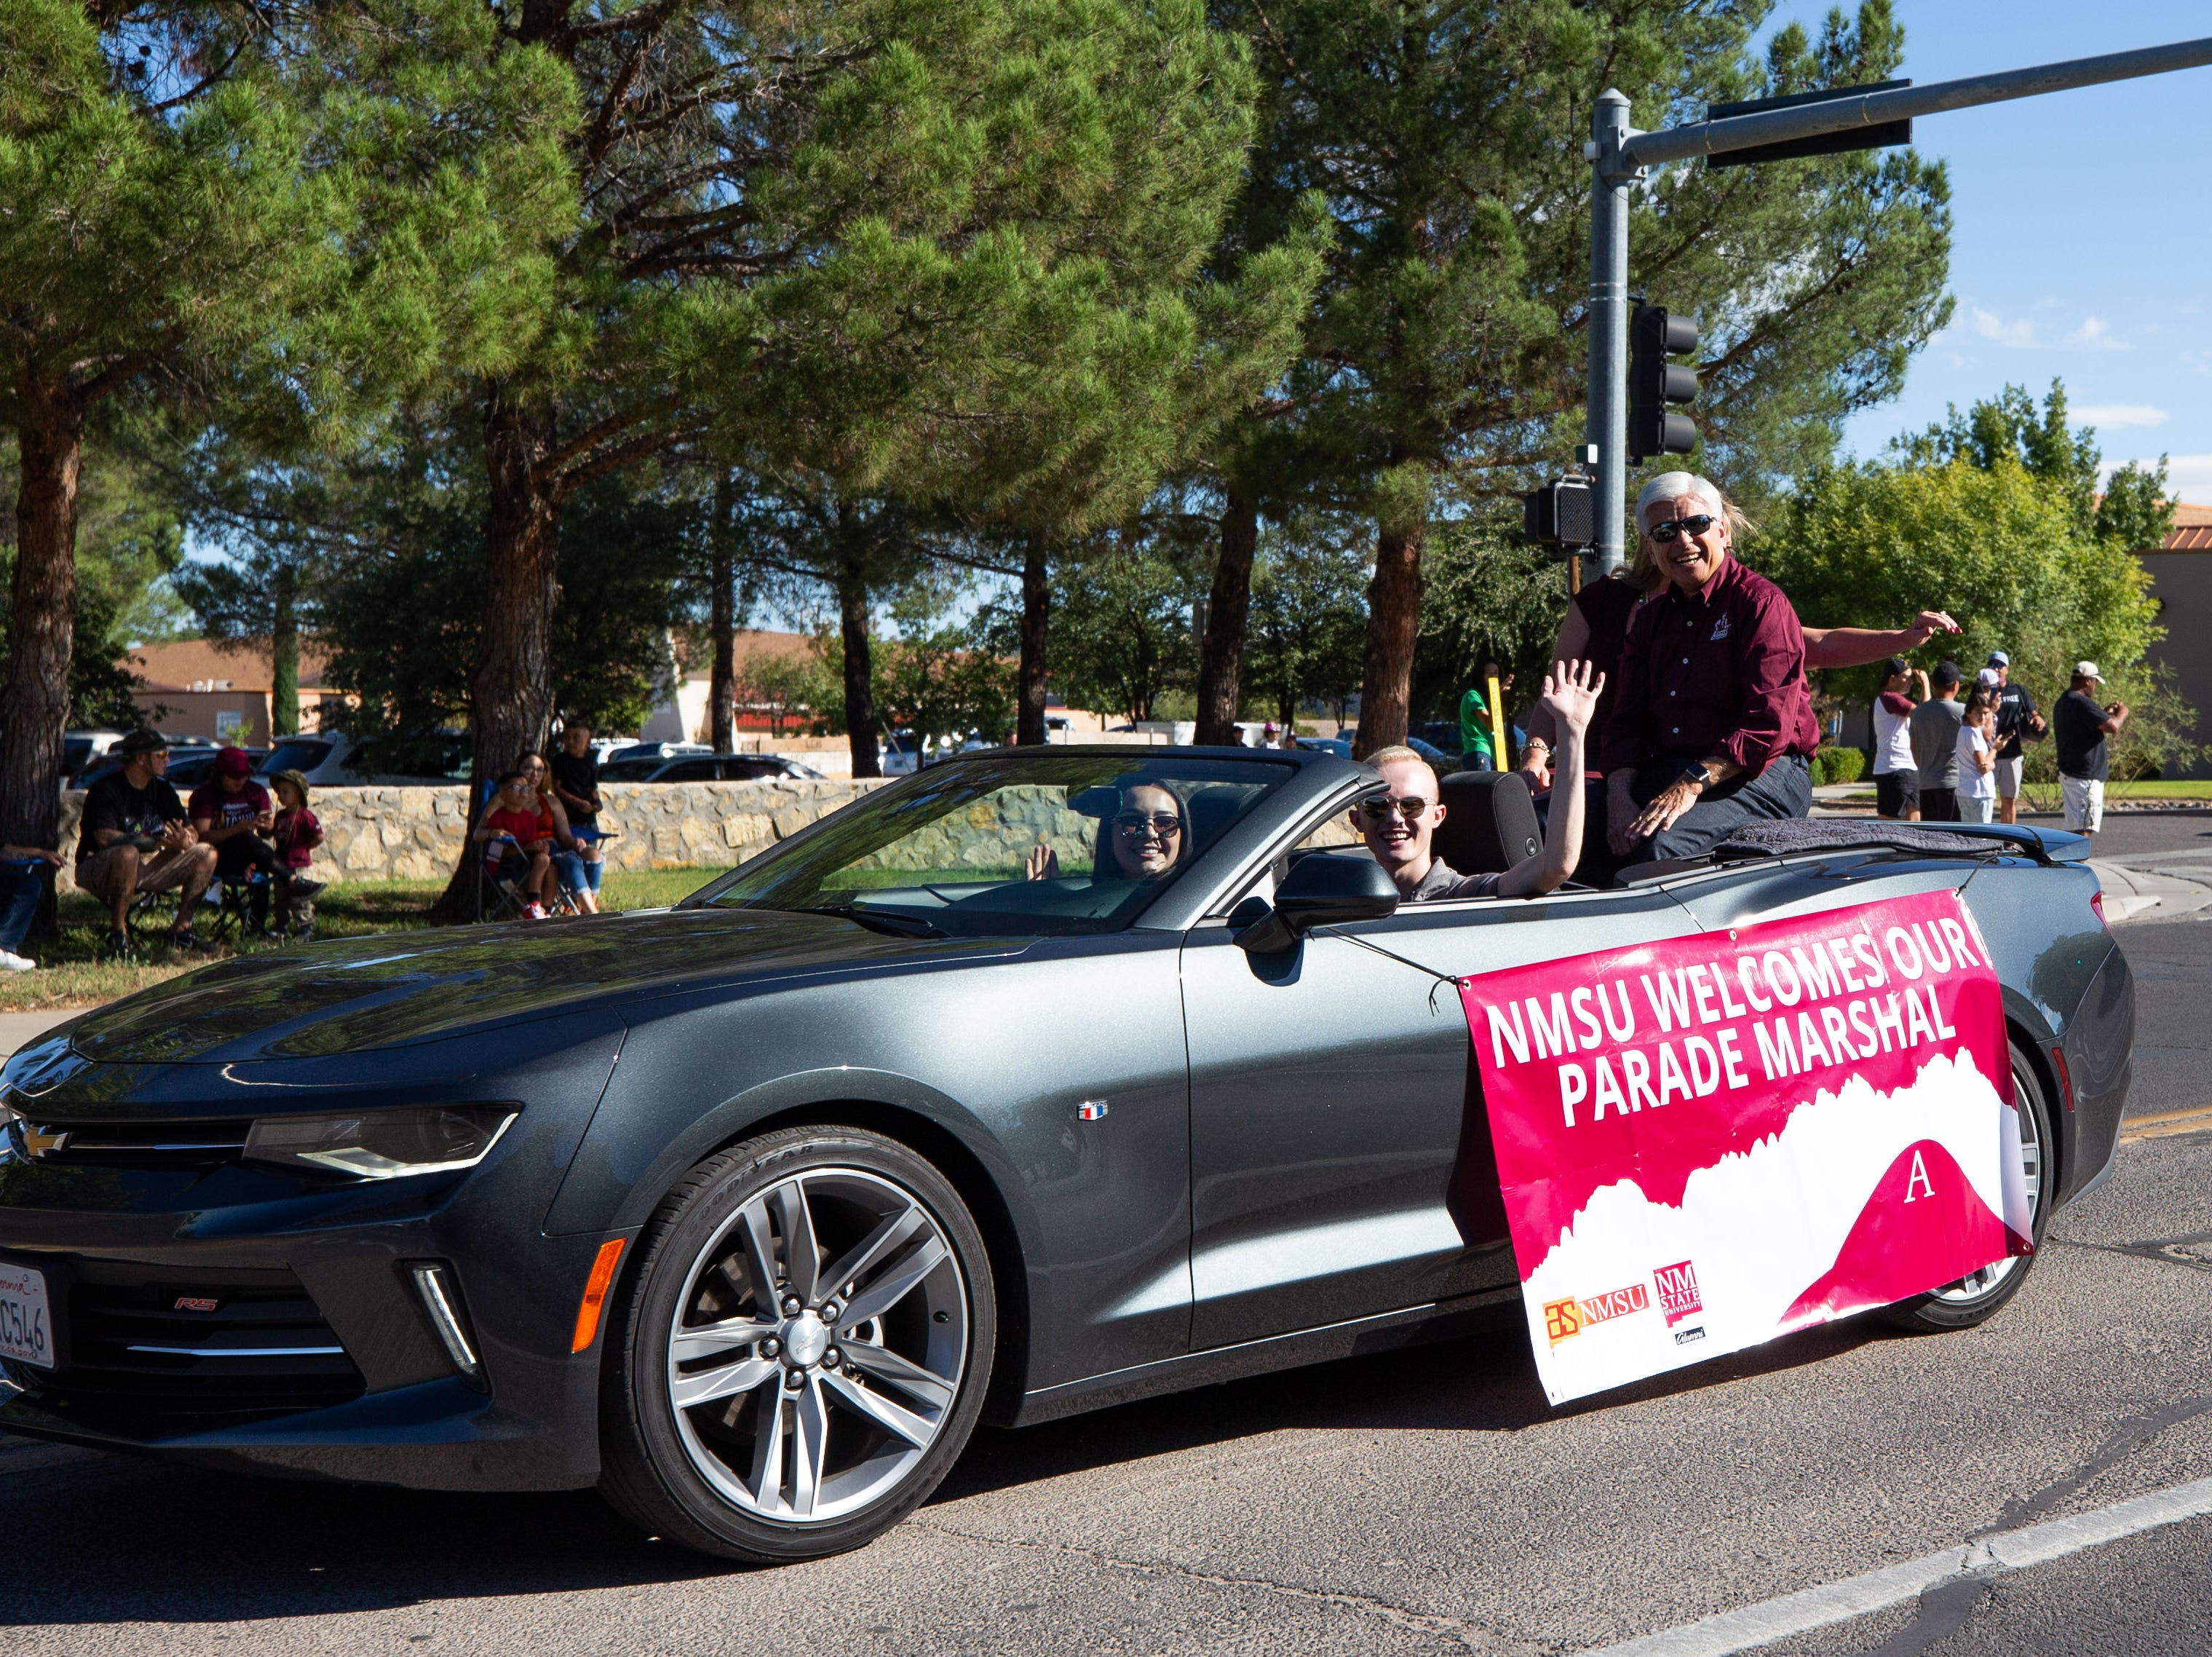 Parade Marshal, NMSU Chancellor Arvizu. Driving the car is ASNMSU President Emerson Morrow and ASNMSU Vice President, Linda Cisneros at the NMSU Homecoming Parade on October 6, 2018.